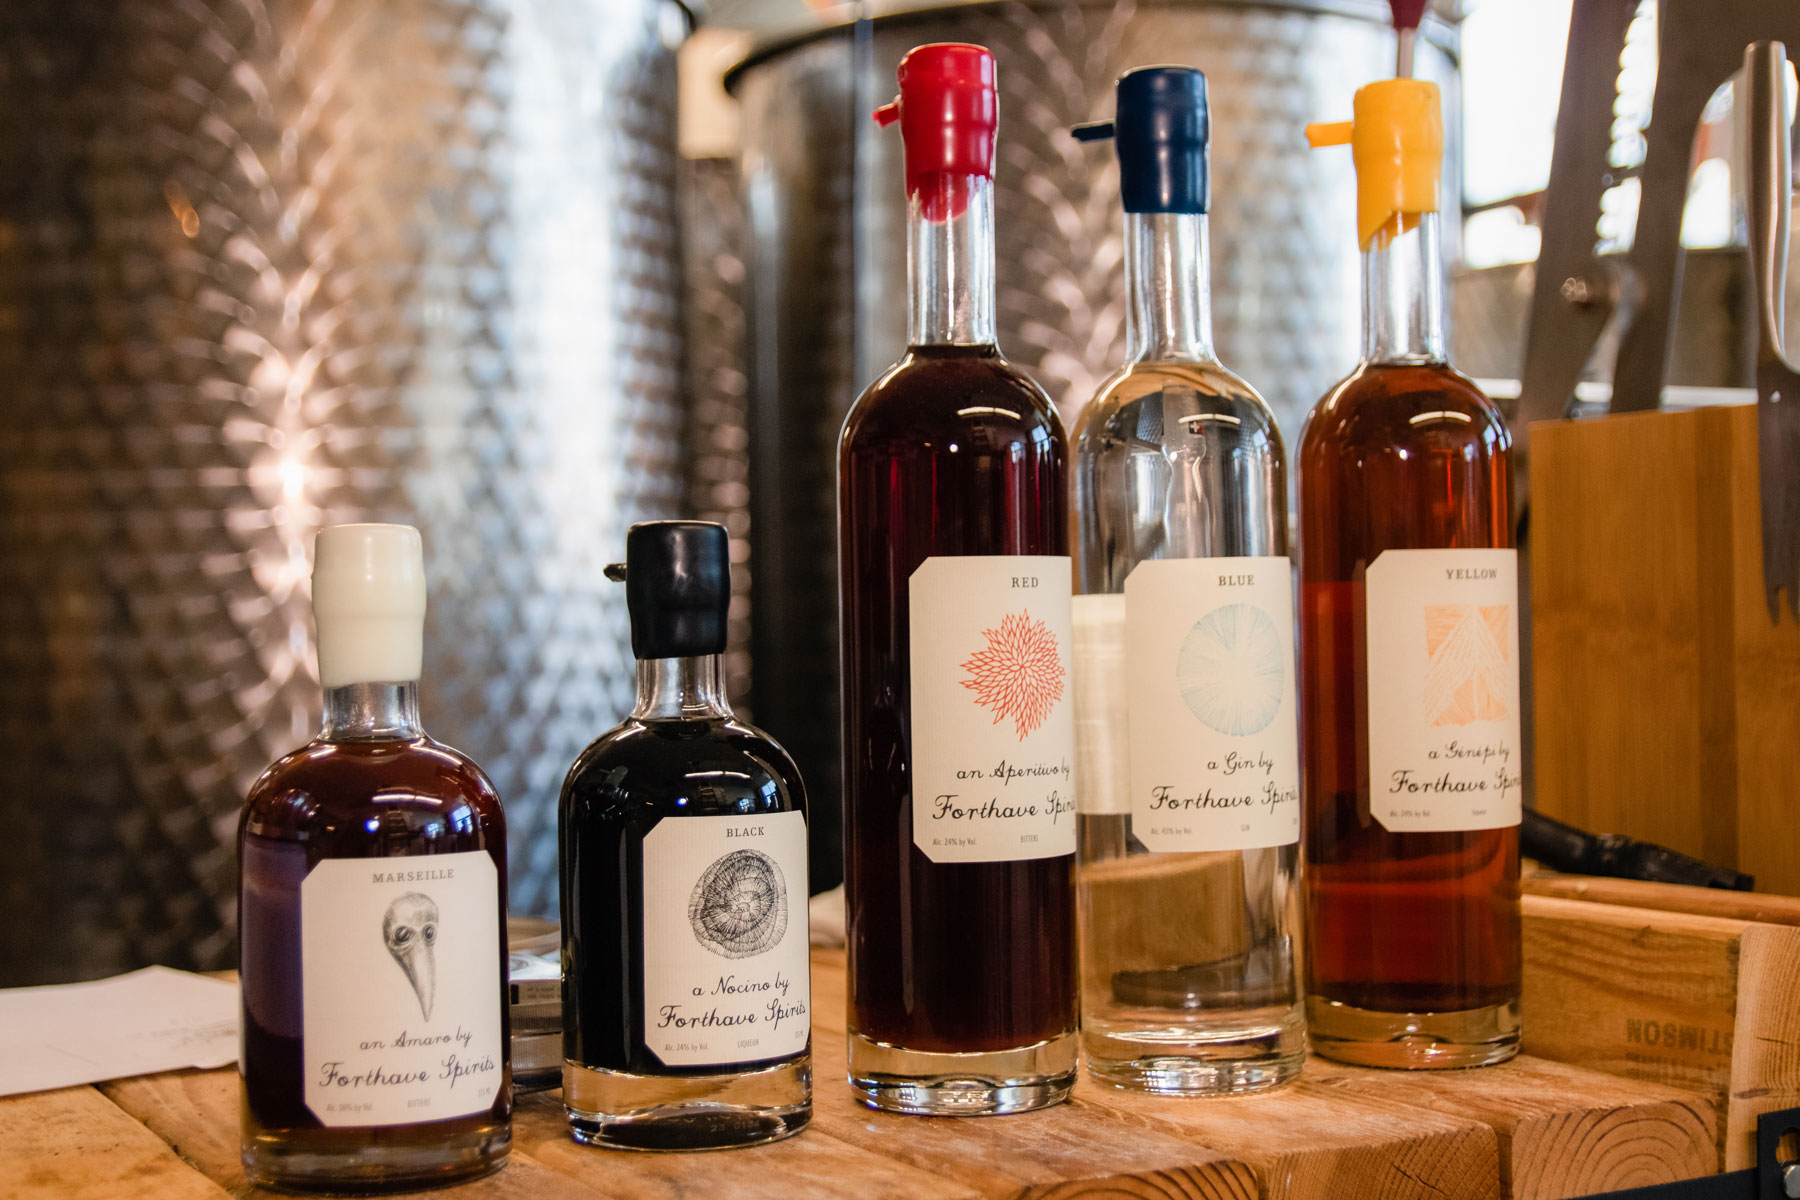 A selection of liquor bottles from Forthave Spirits.